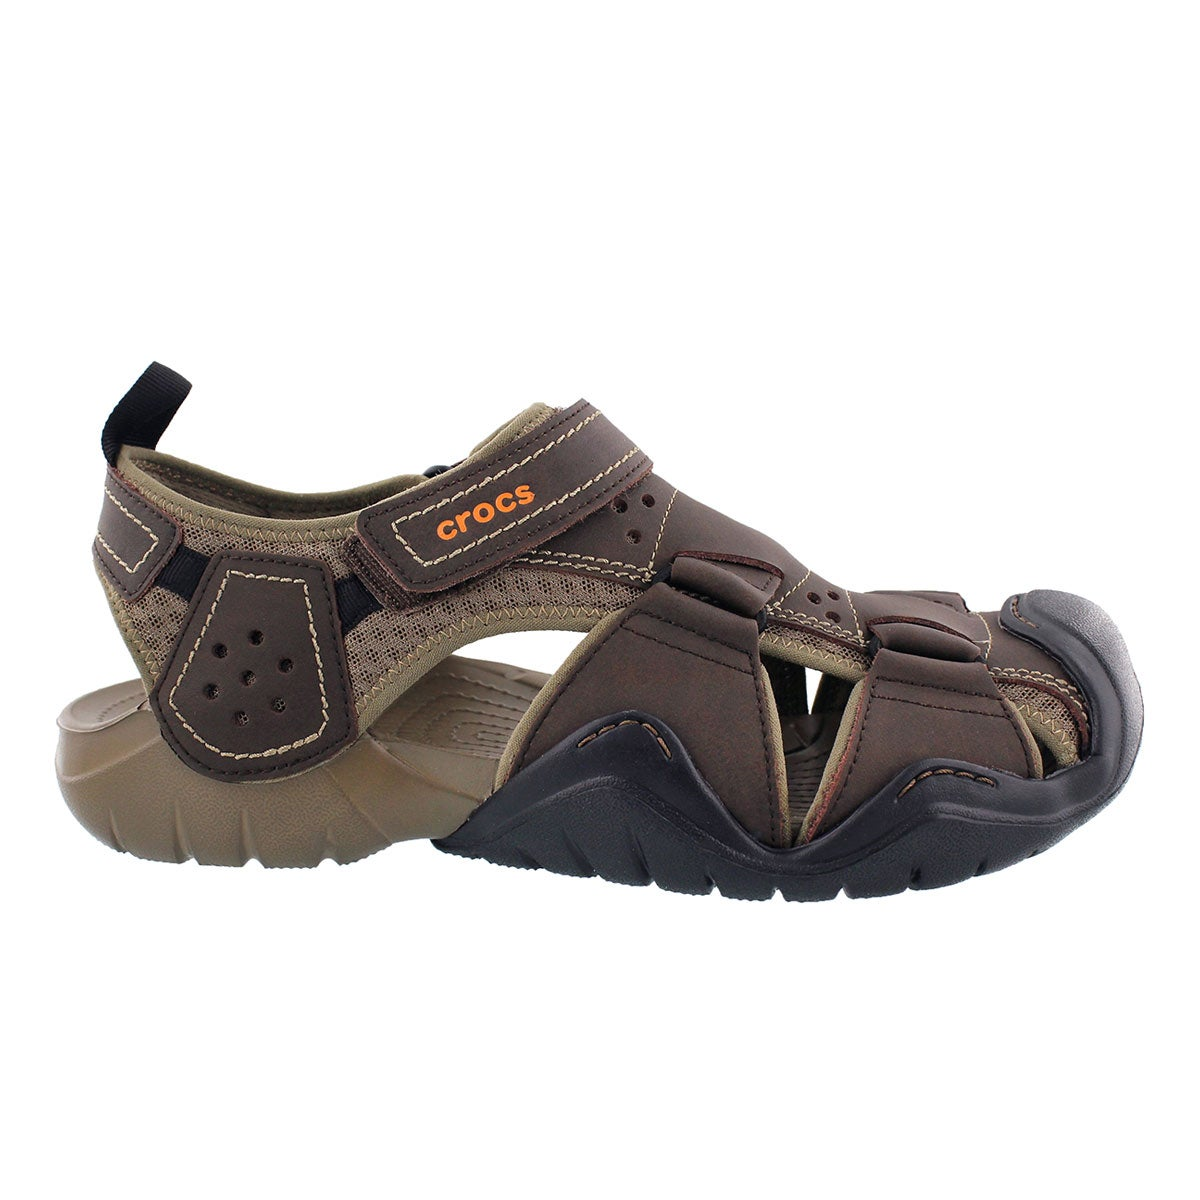 Crocs men 39 s swiftwater leather fisherman sandal ebay for Crocs fishing shoes